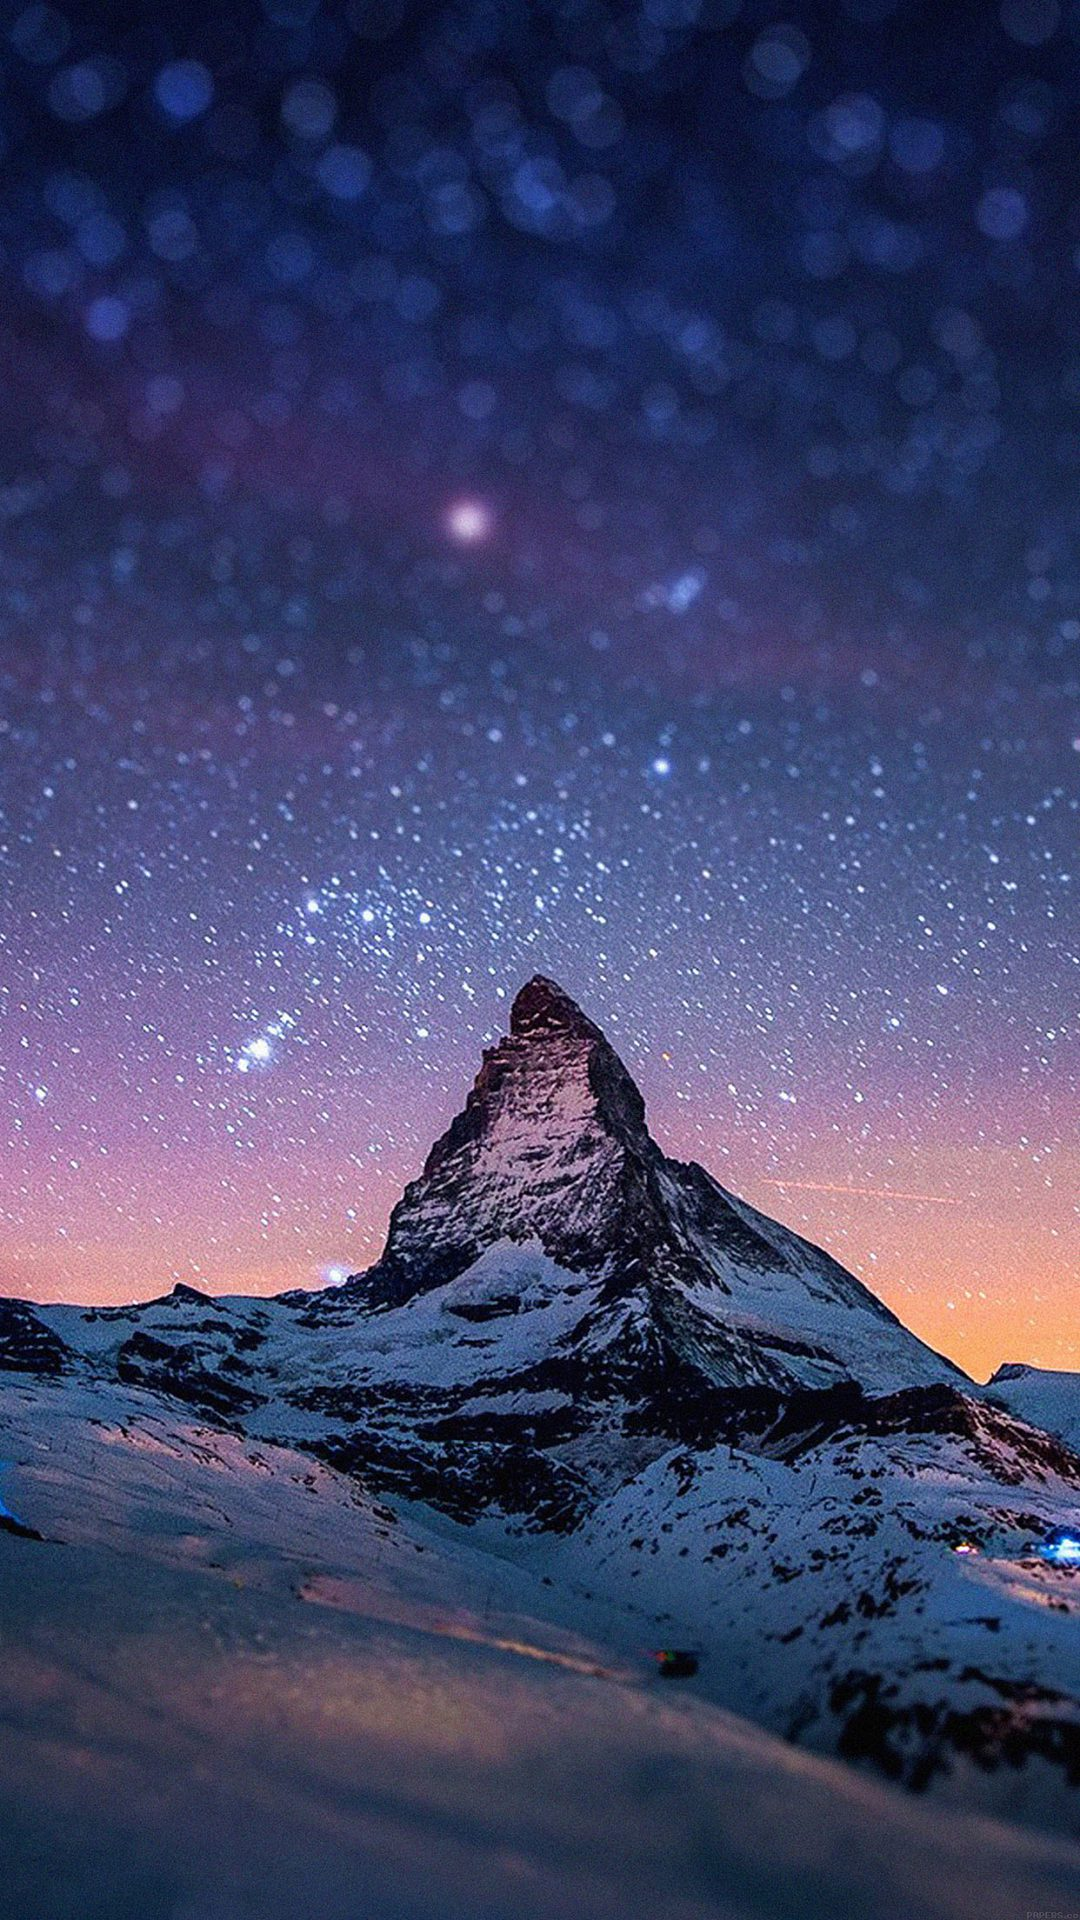 Night Stars Over Moutain Nature Wallpapers For Iphone